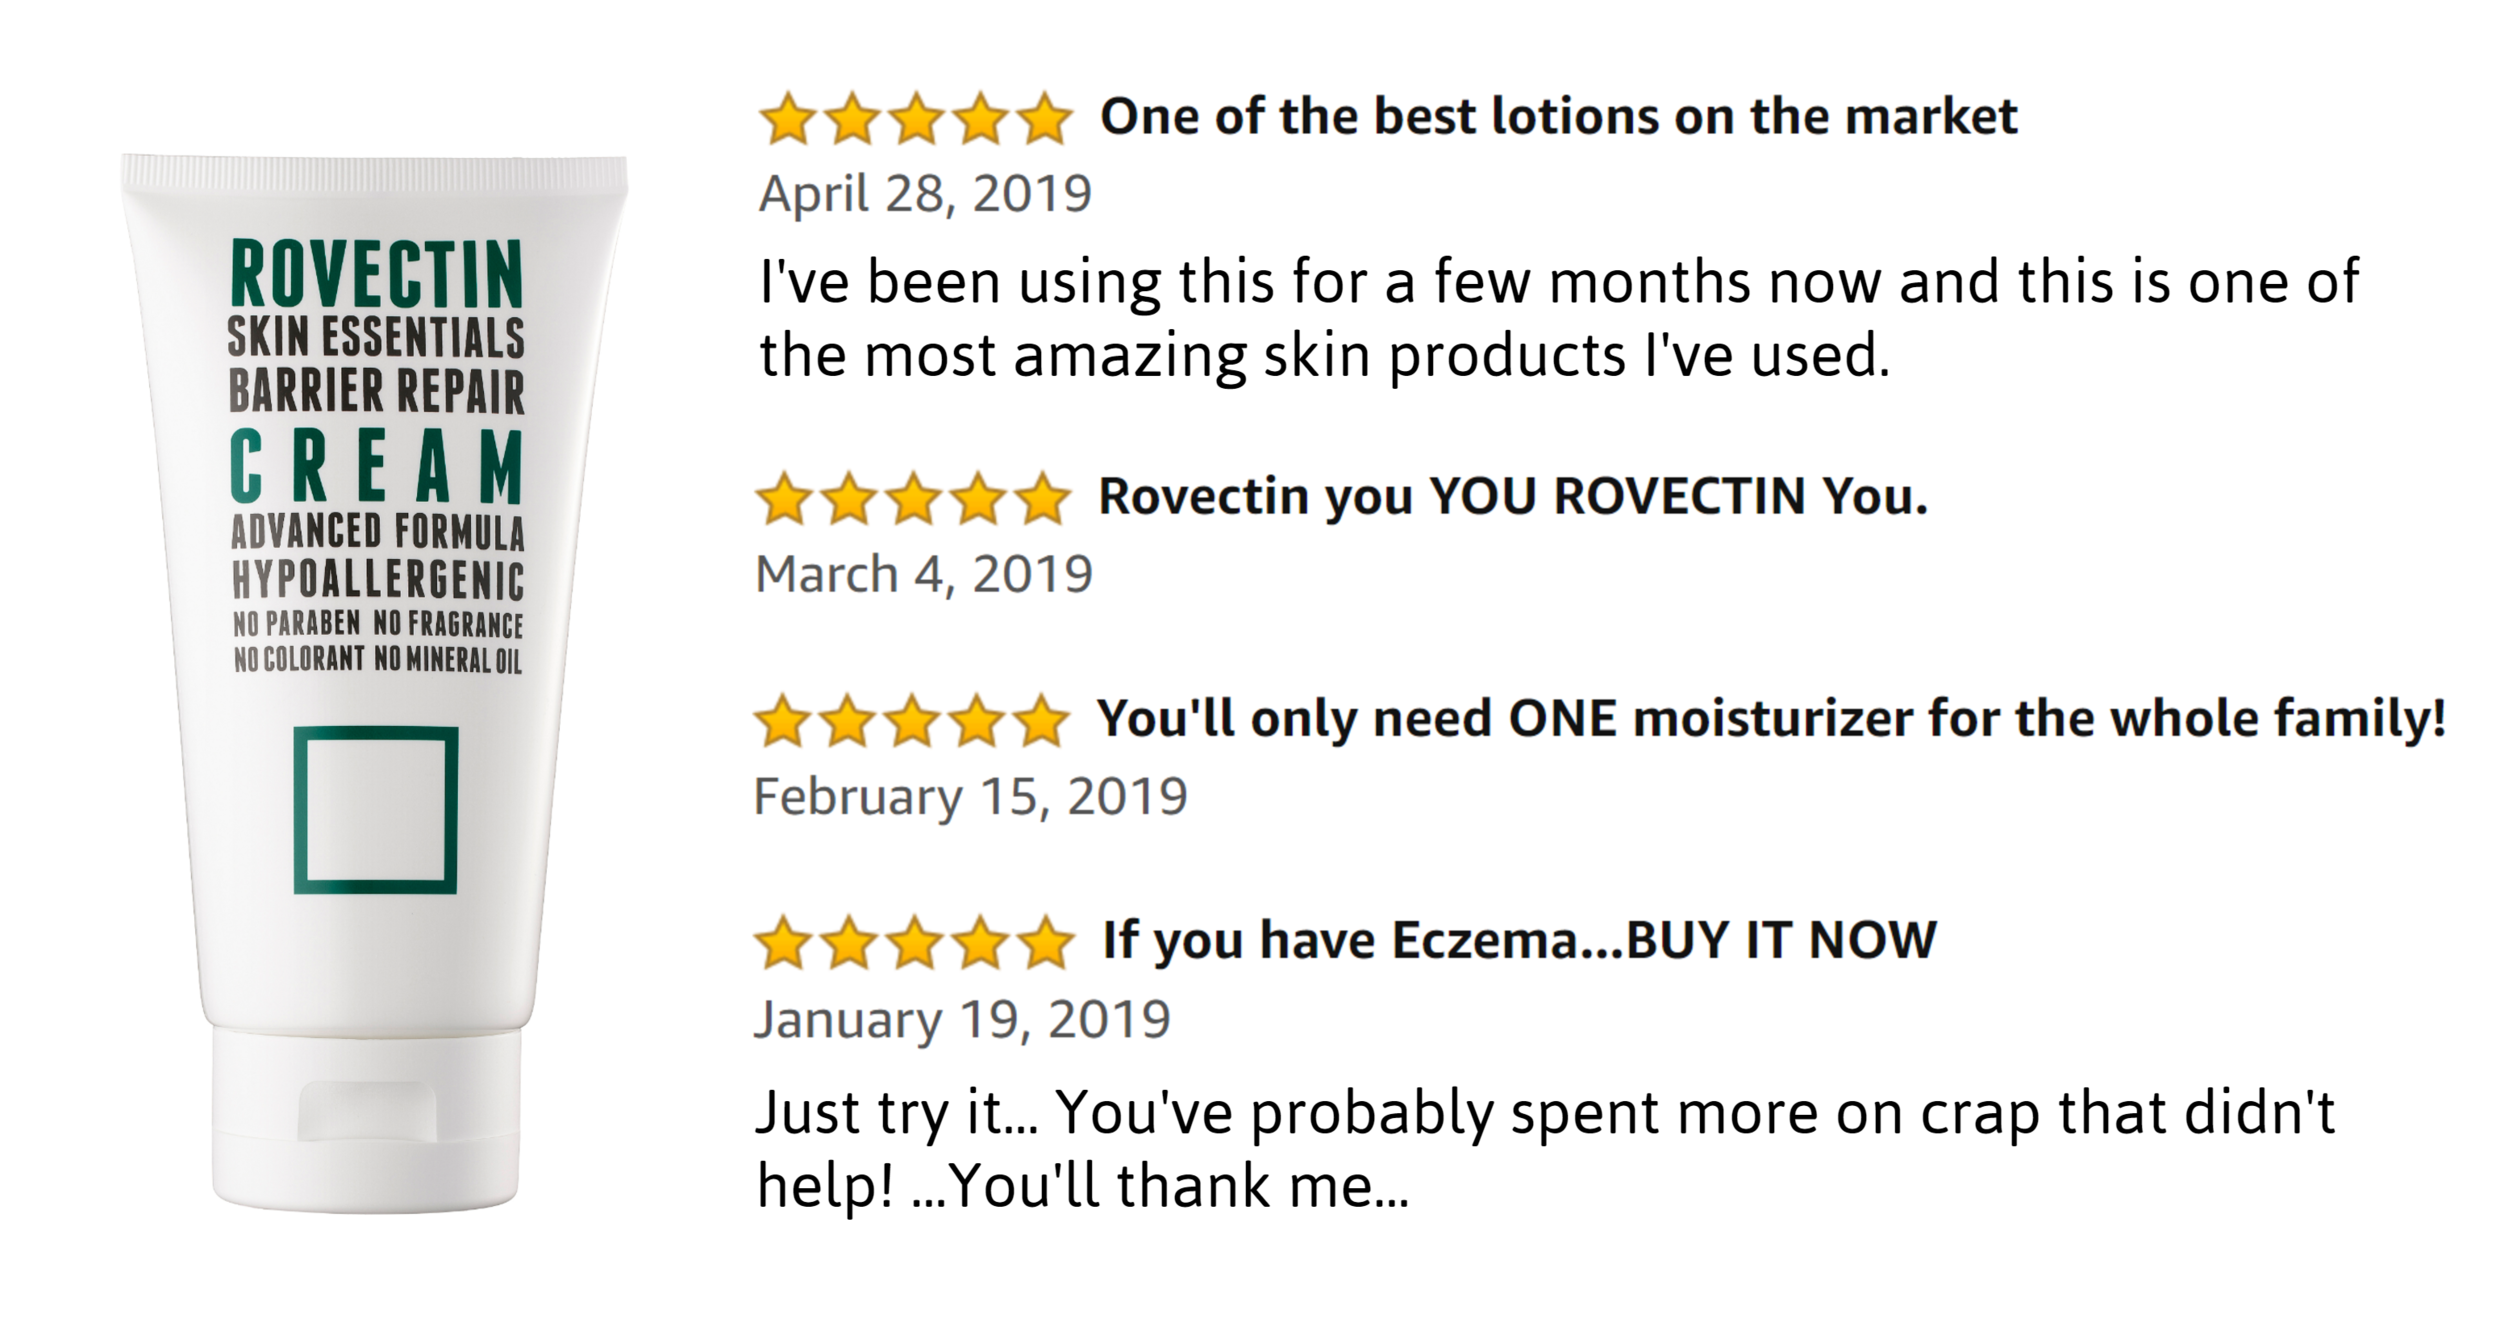 Rovectin Skin Essentials Barrier Repair  Creme (review).png